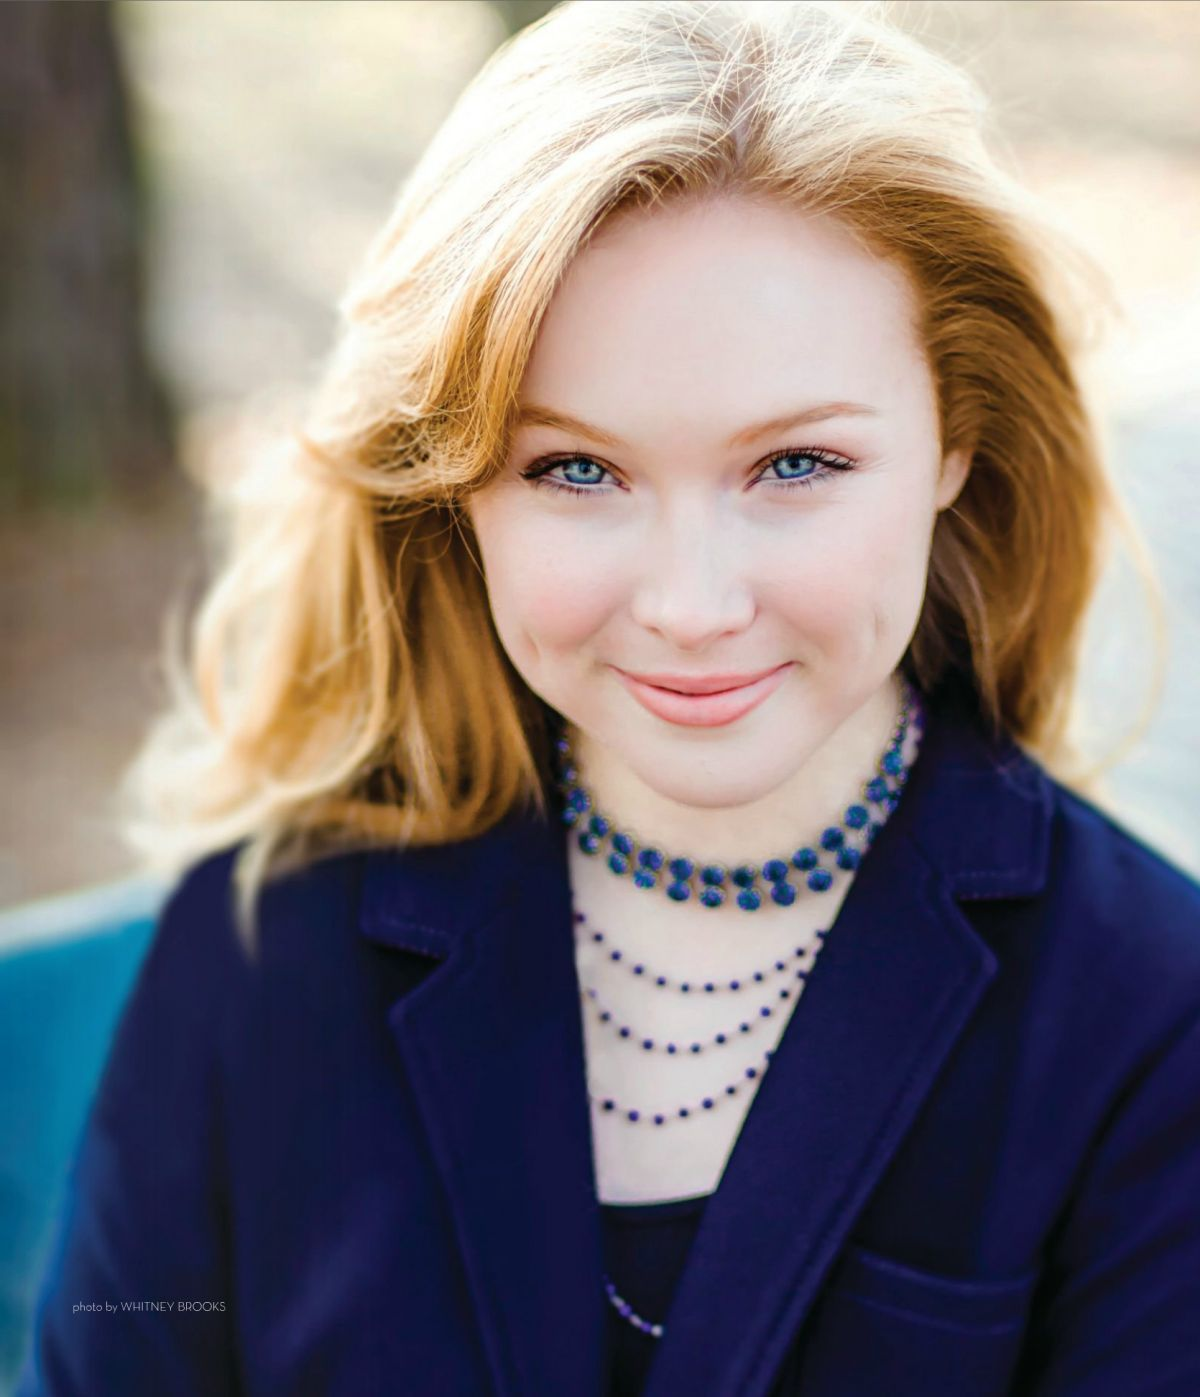 MOLLY QUINN at States Living Magazine, February 2015 Issue